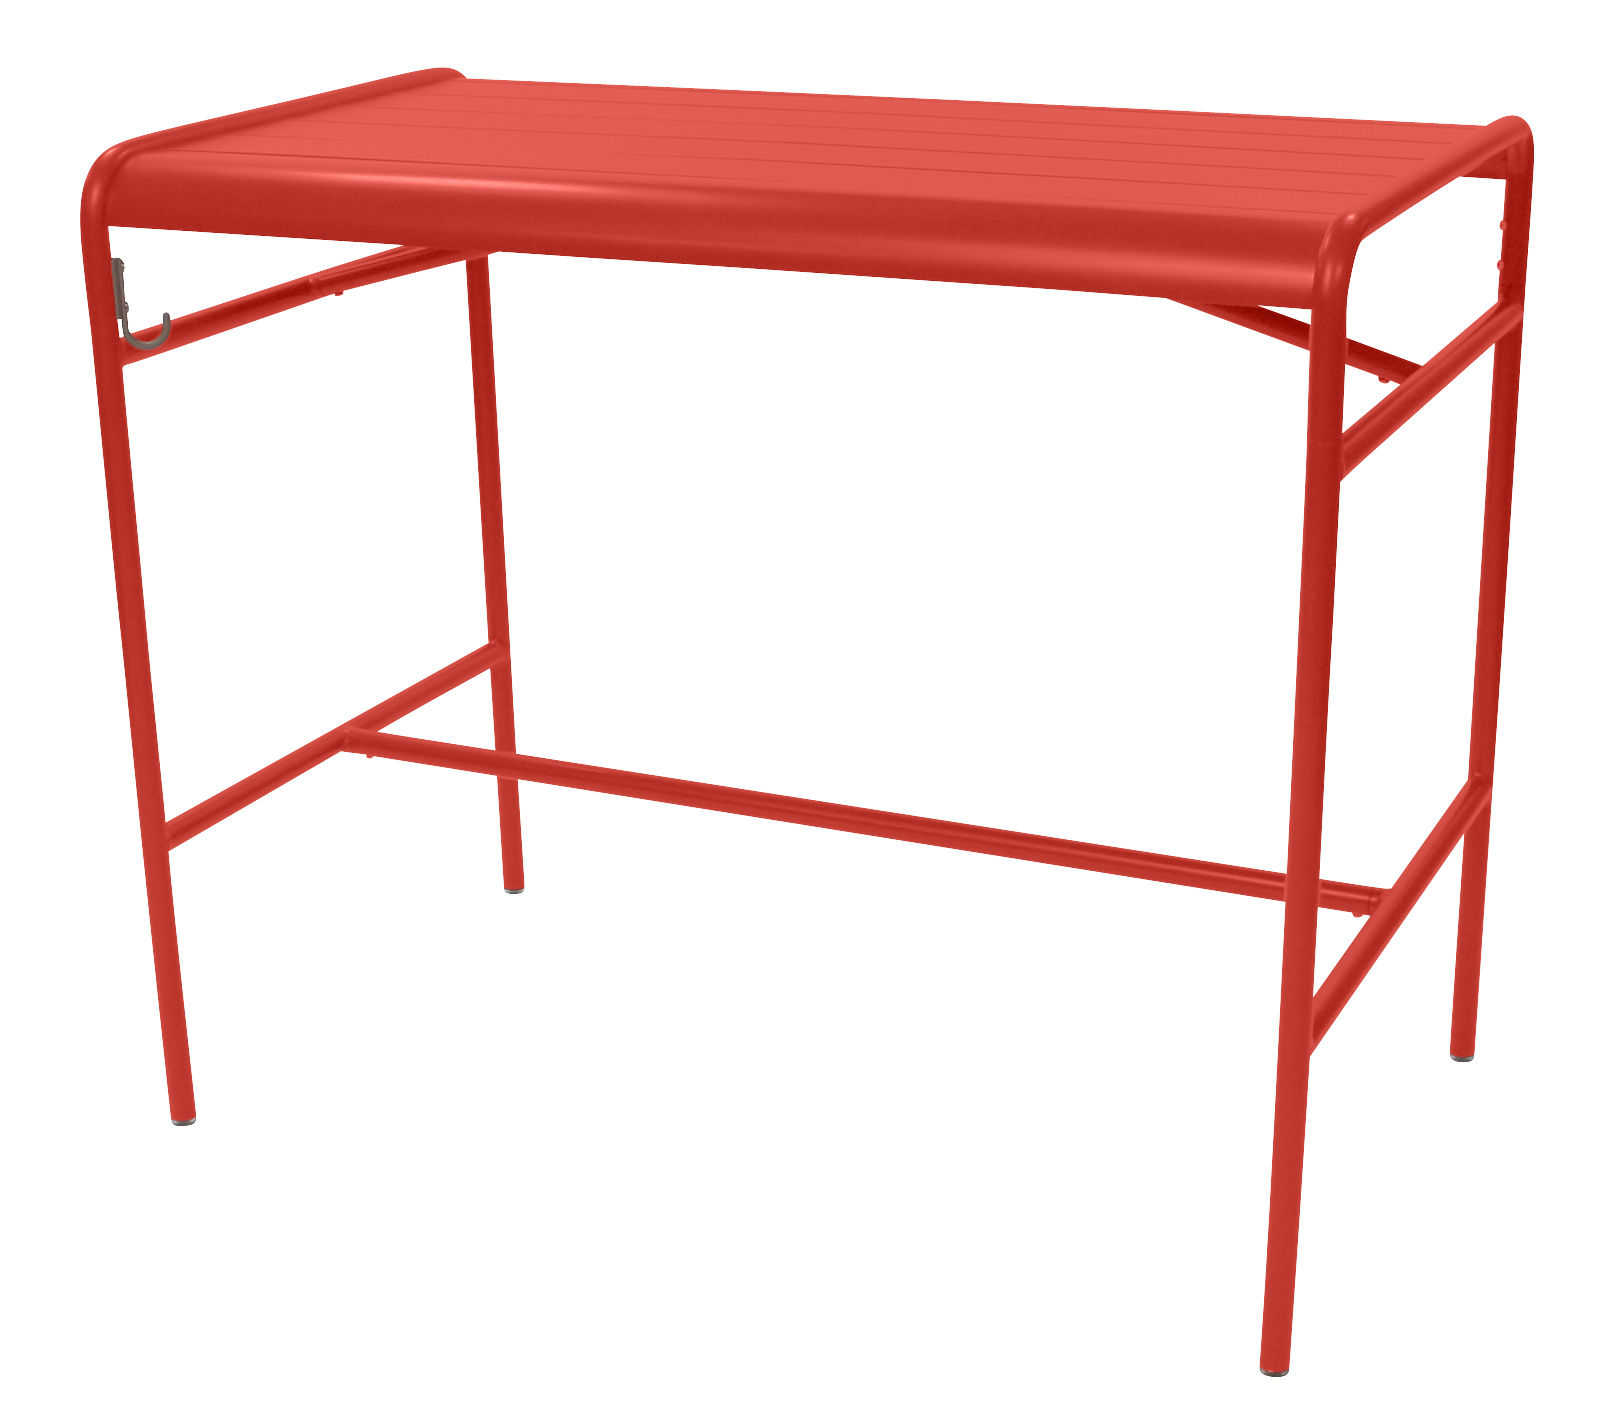 Furniture - High Tables - Luxembourg High table - 4 people - 126 x 73 cm by Fermob - Nasturtium - Aluminium